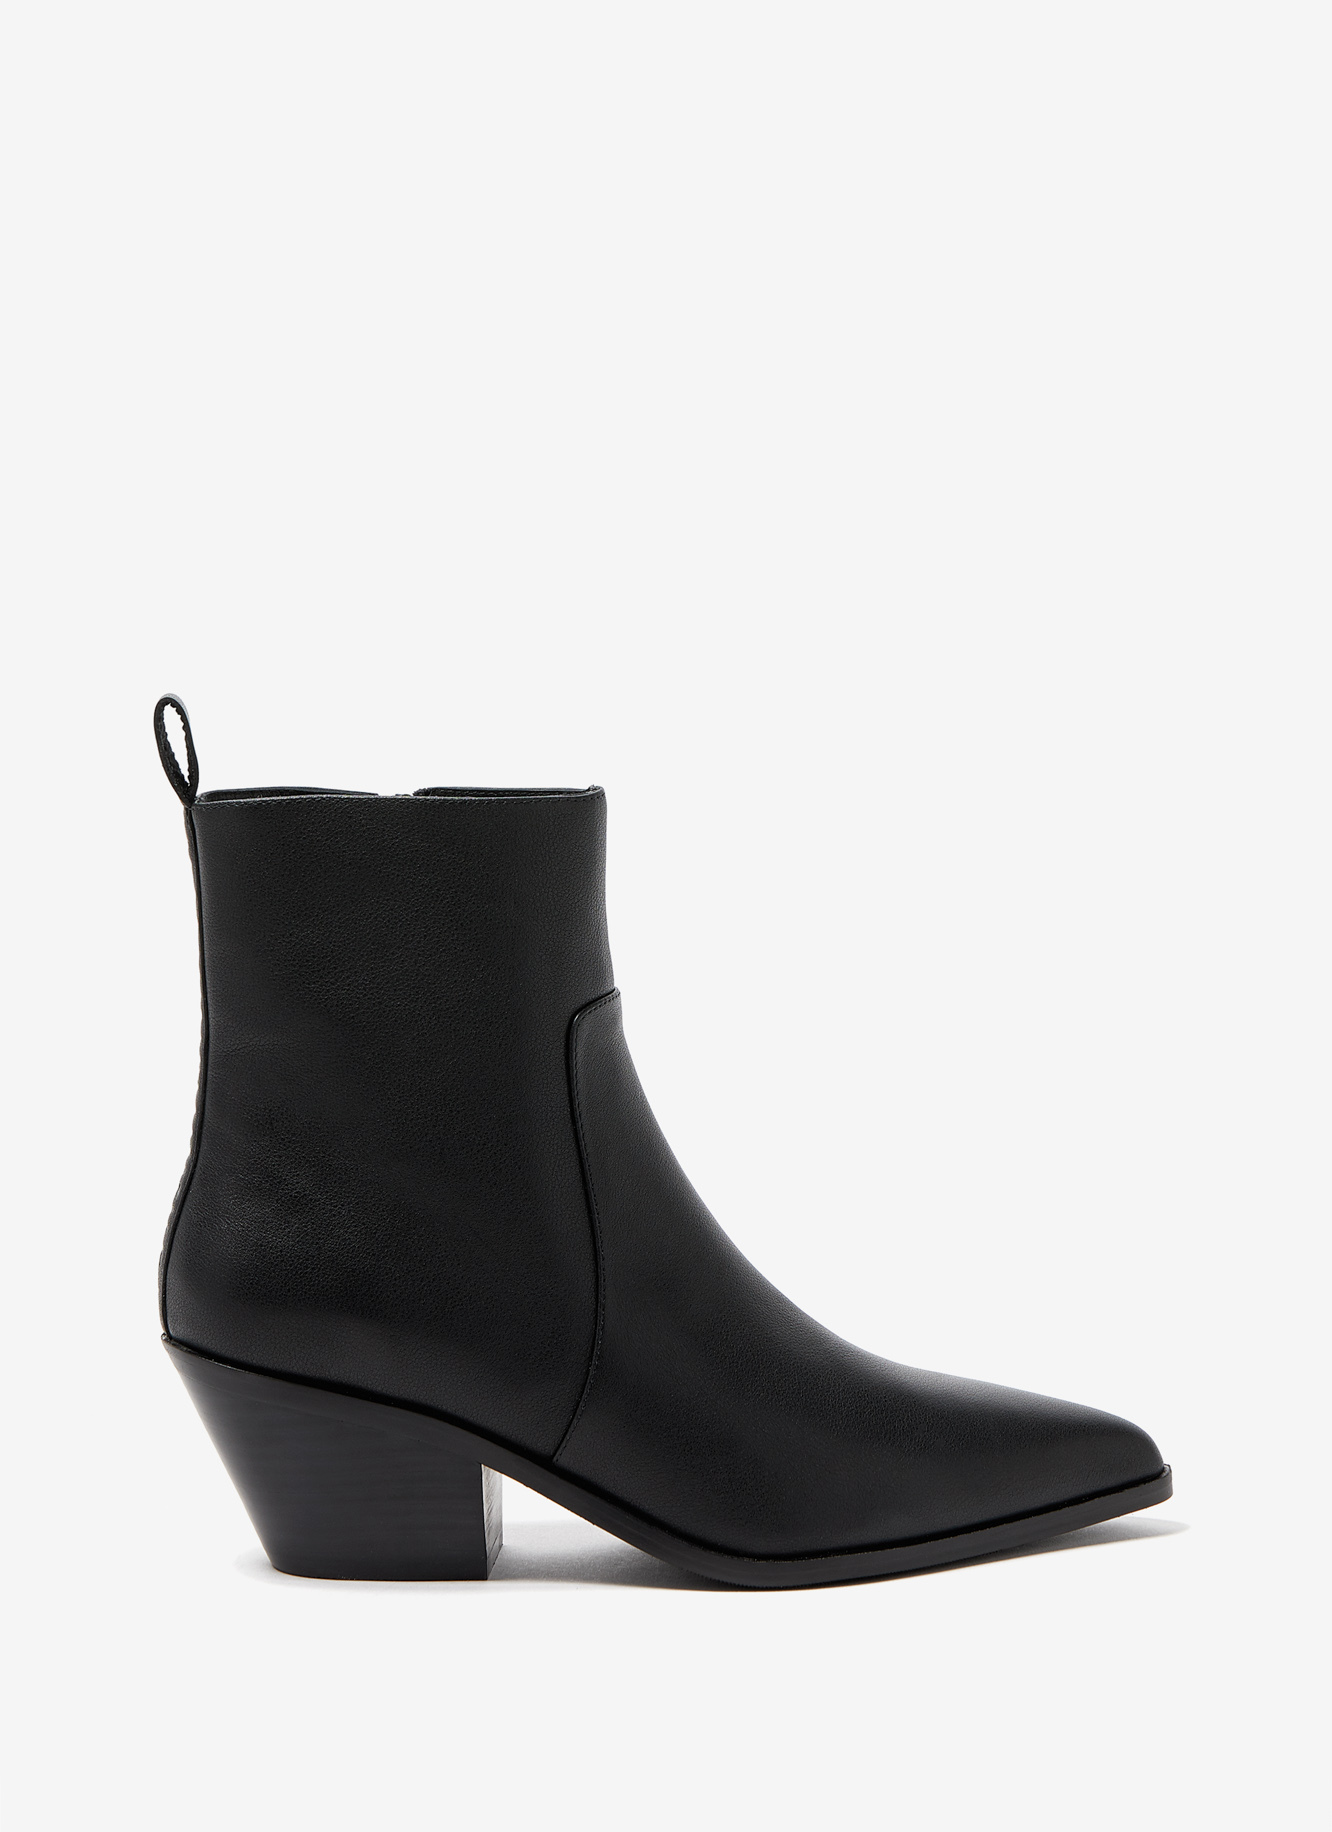 SHORT BOOT WITH SIDE ZIPPER